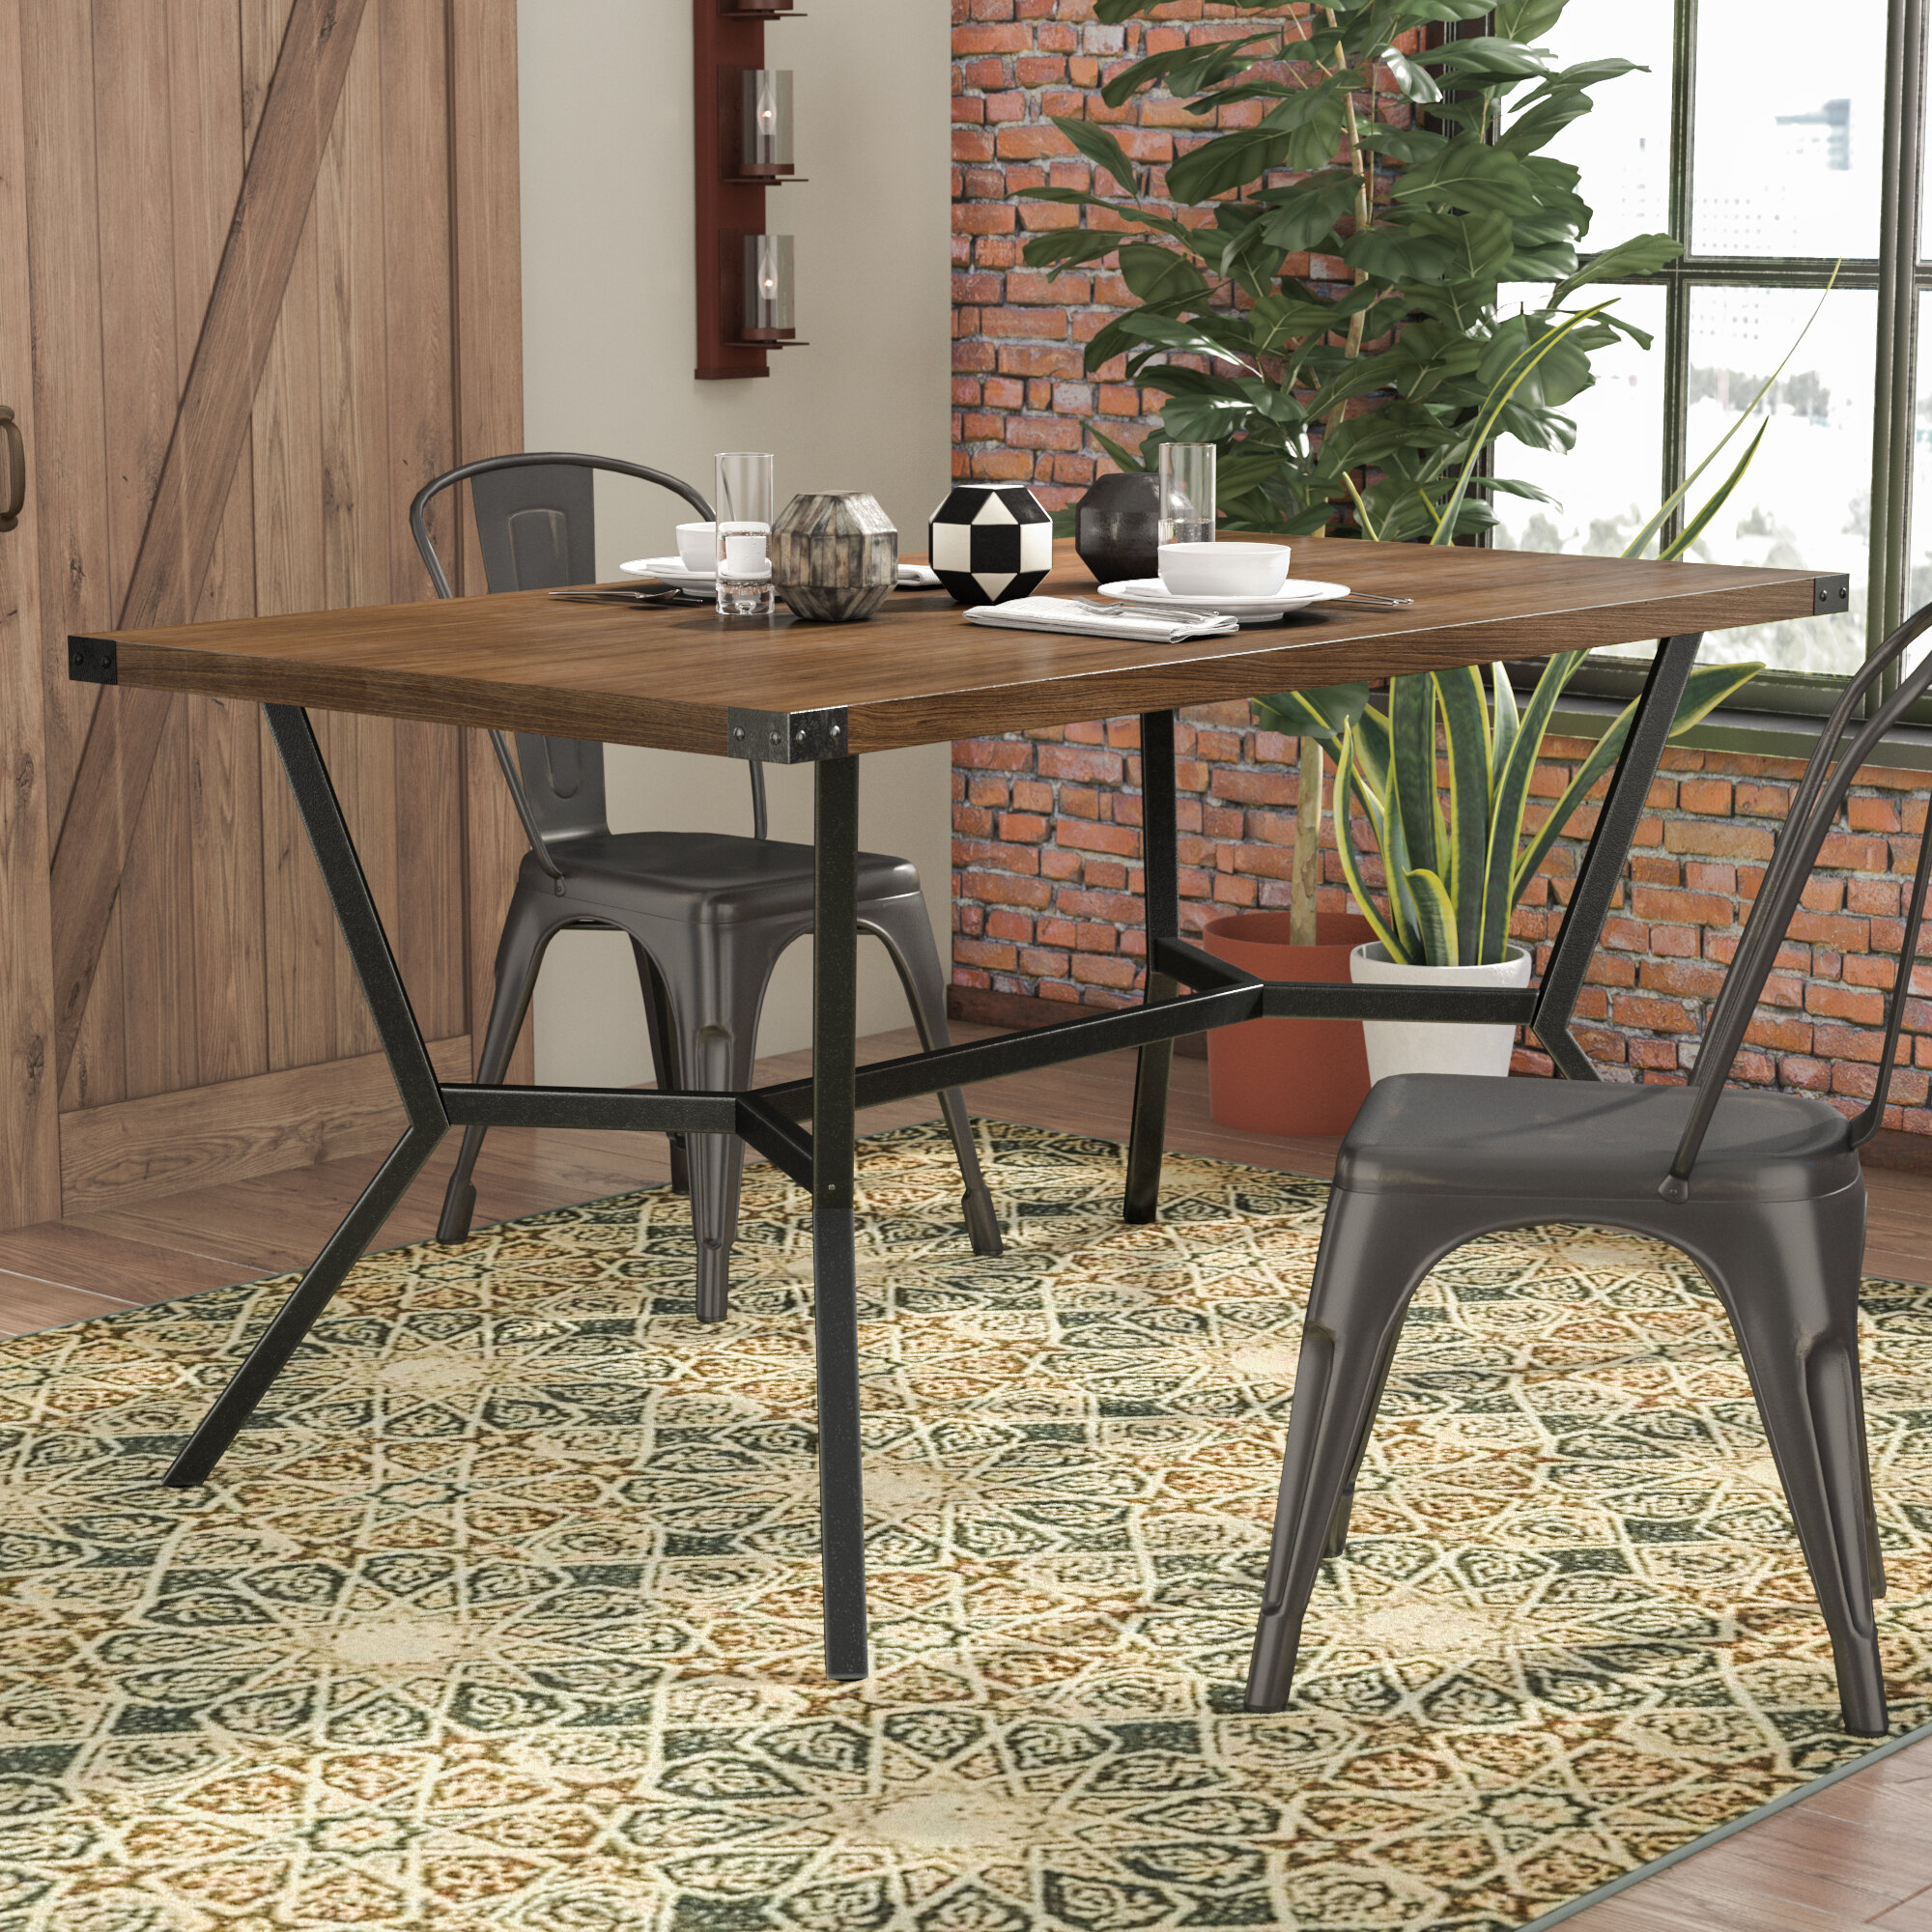 T Austin Design Fossil Counter Height Dining Table By Simmons Casegoods Reviews Wayfair